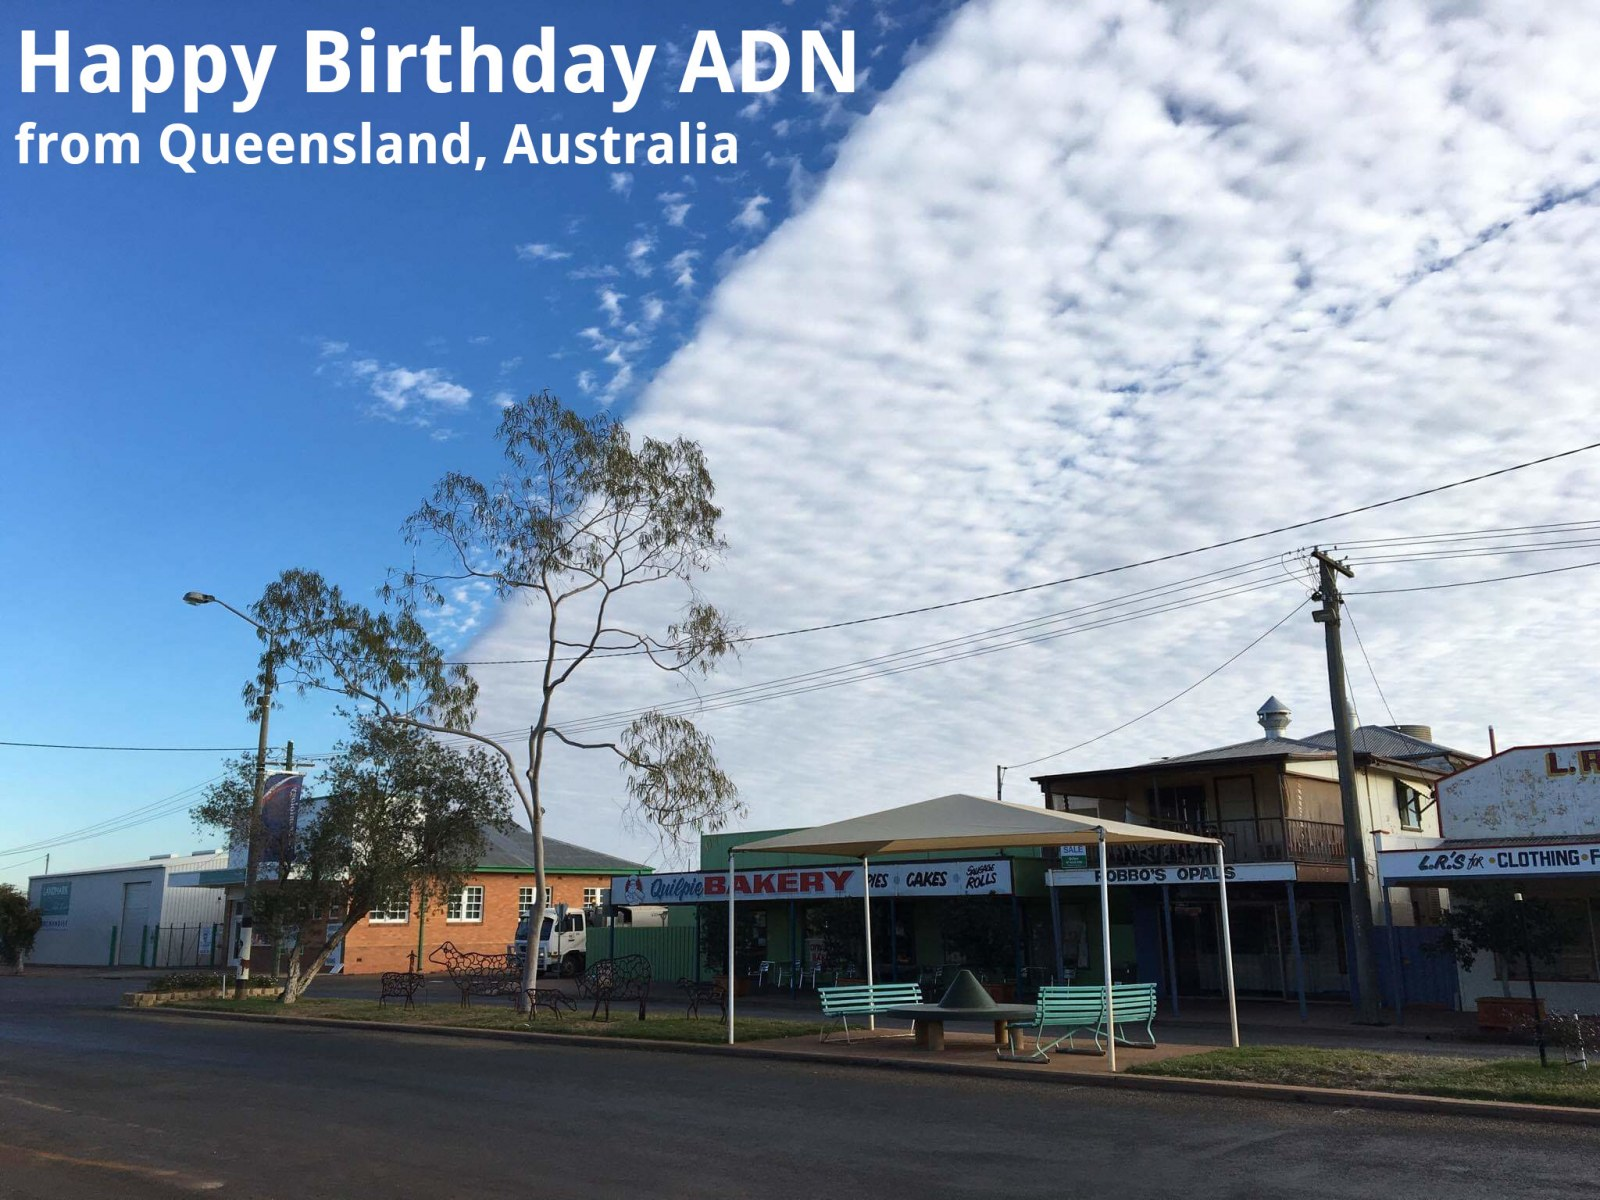 Birthday Wishes from Queenslant, Australia